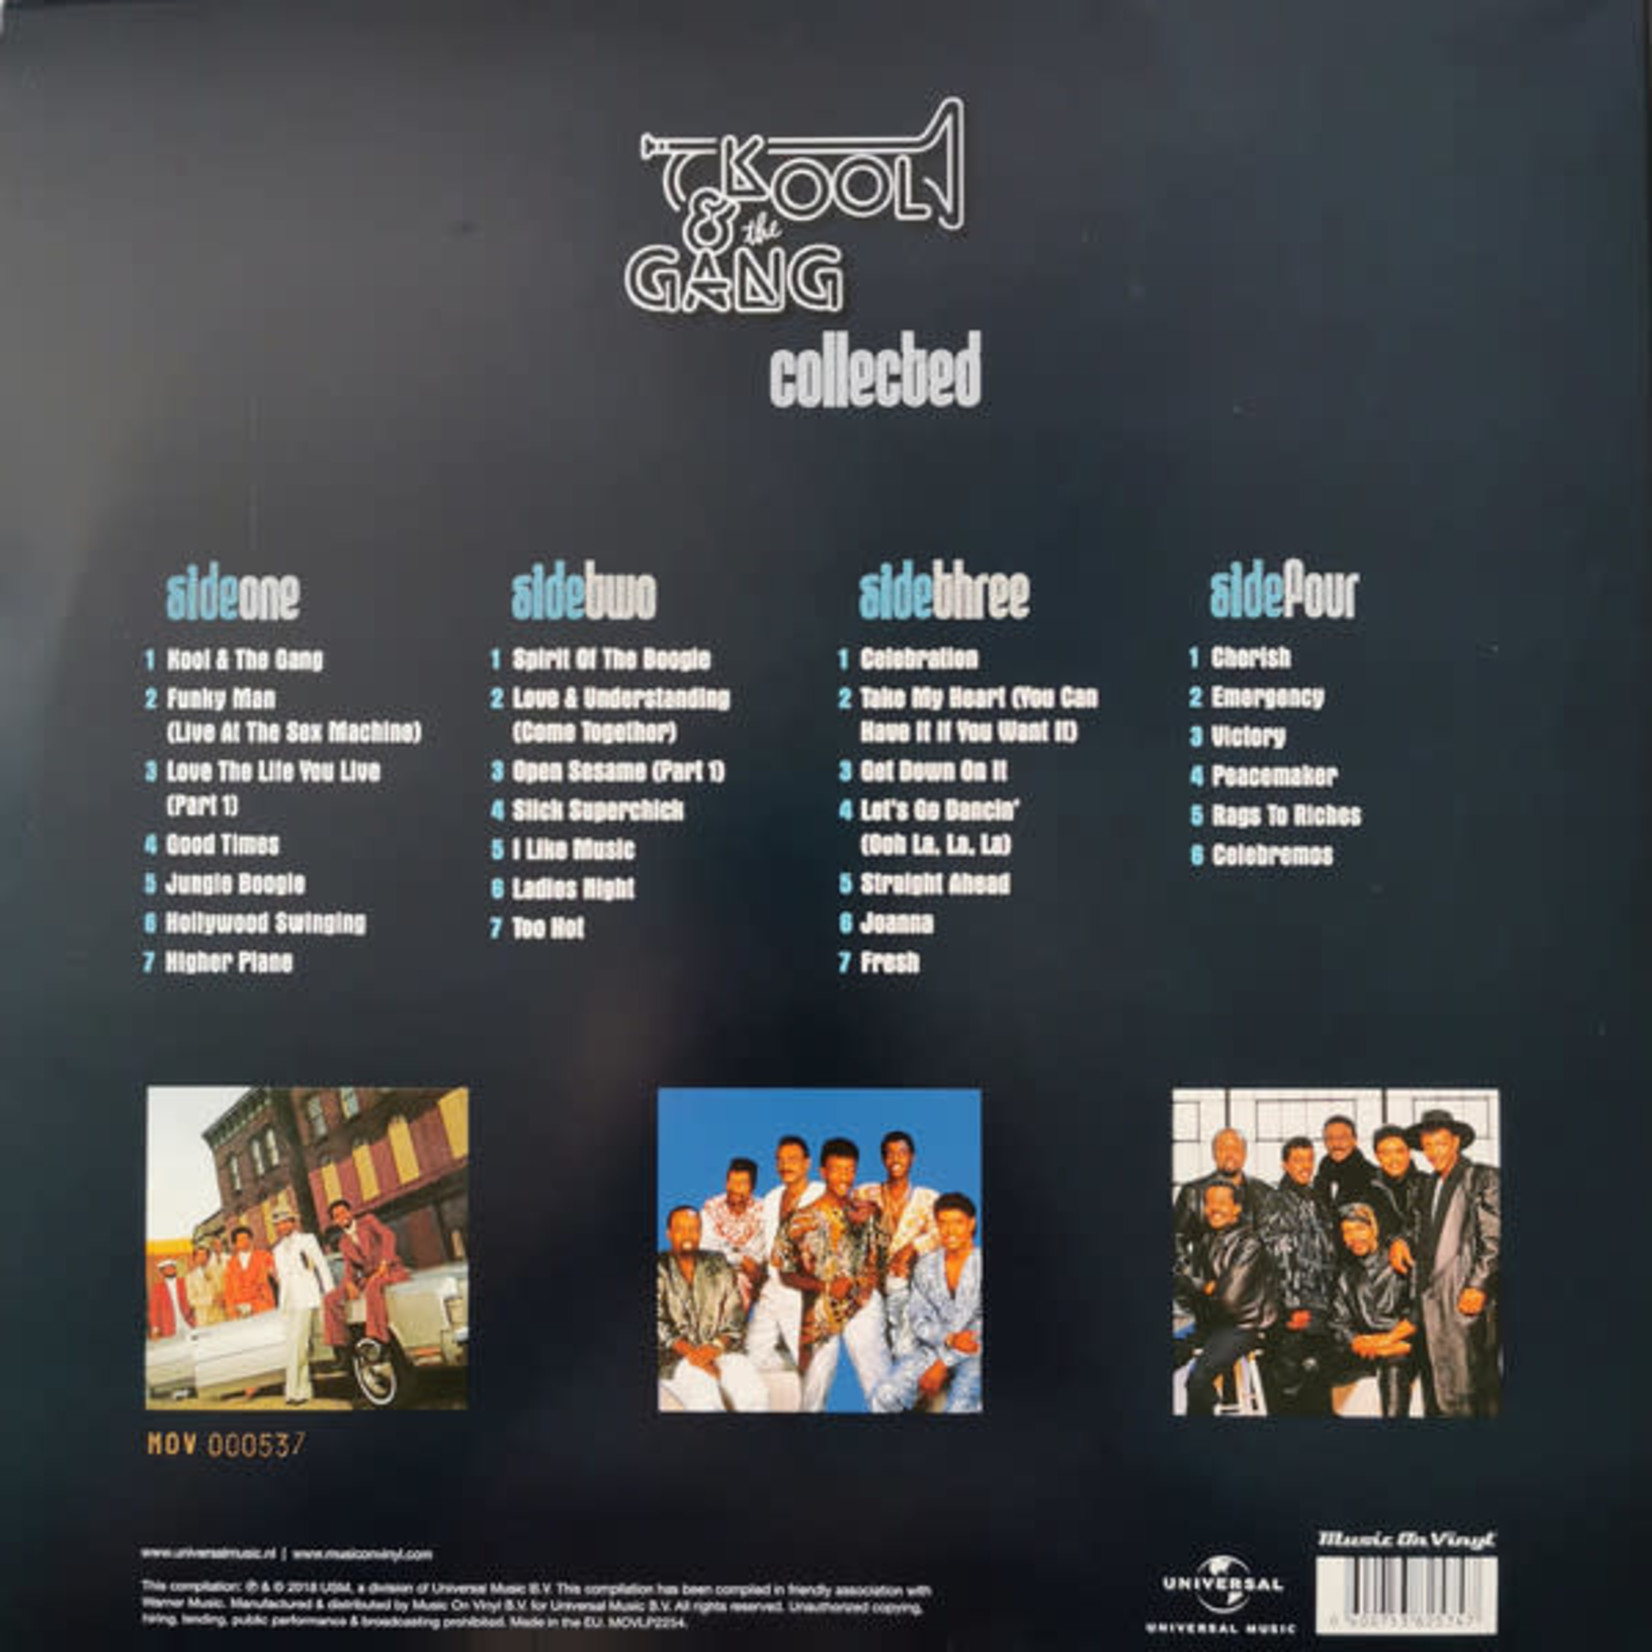 KOOL AND THE GANG COLLECTED / WHITE VINYL